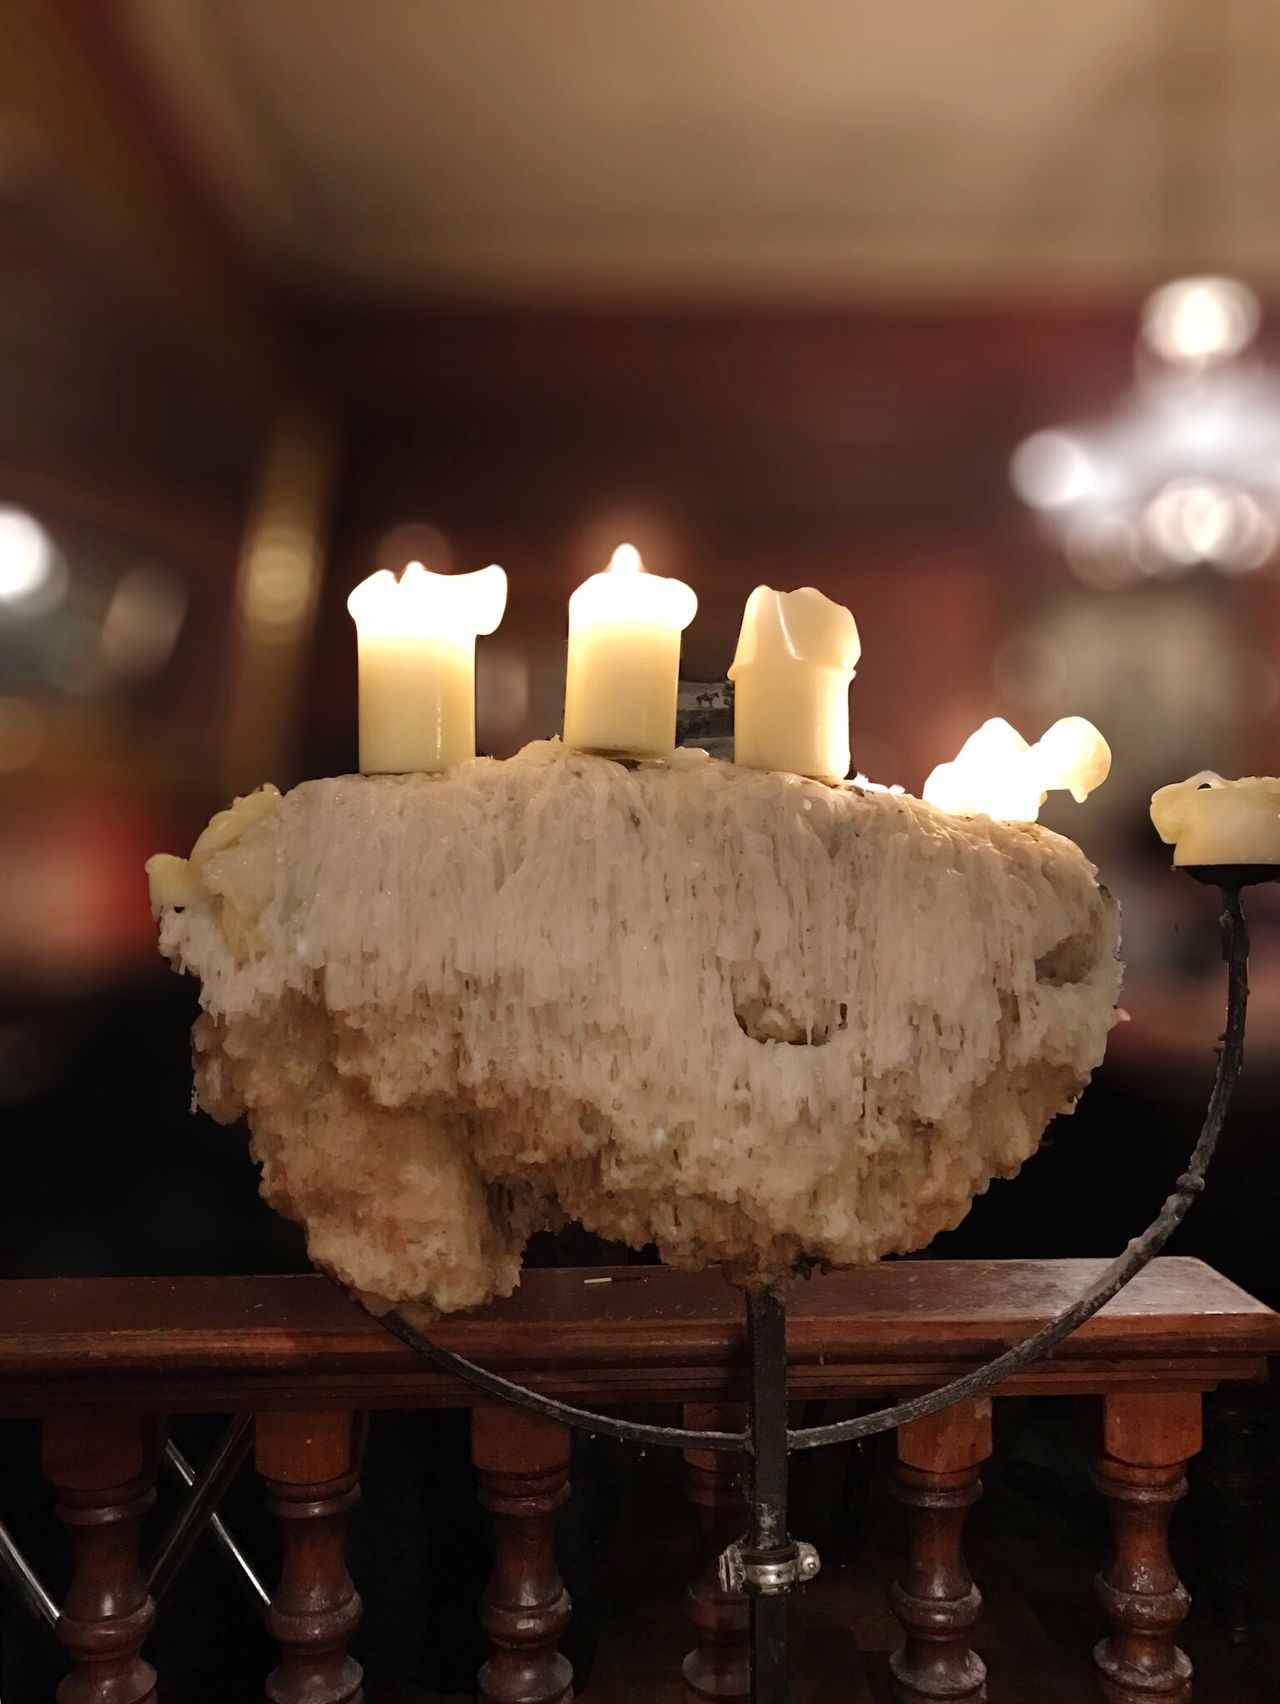 Candelabra Candlelight Dripped Wax Dripping Wax Wrought Iron Candle Candle Light Candle Flame Baluster Balustrade Polished Wood